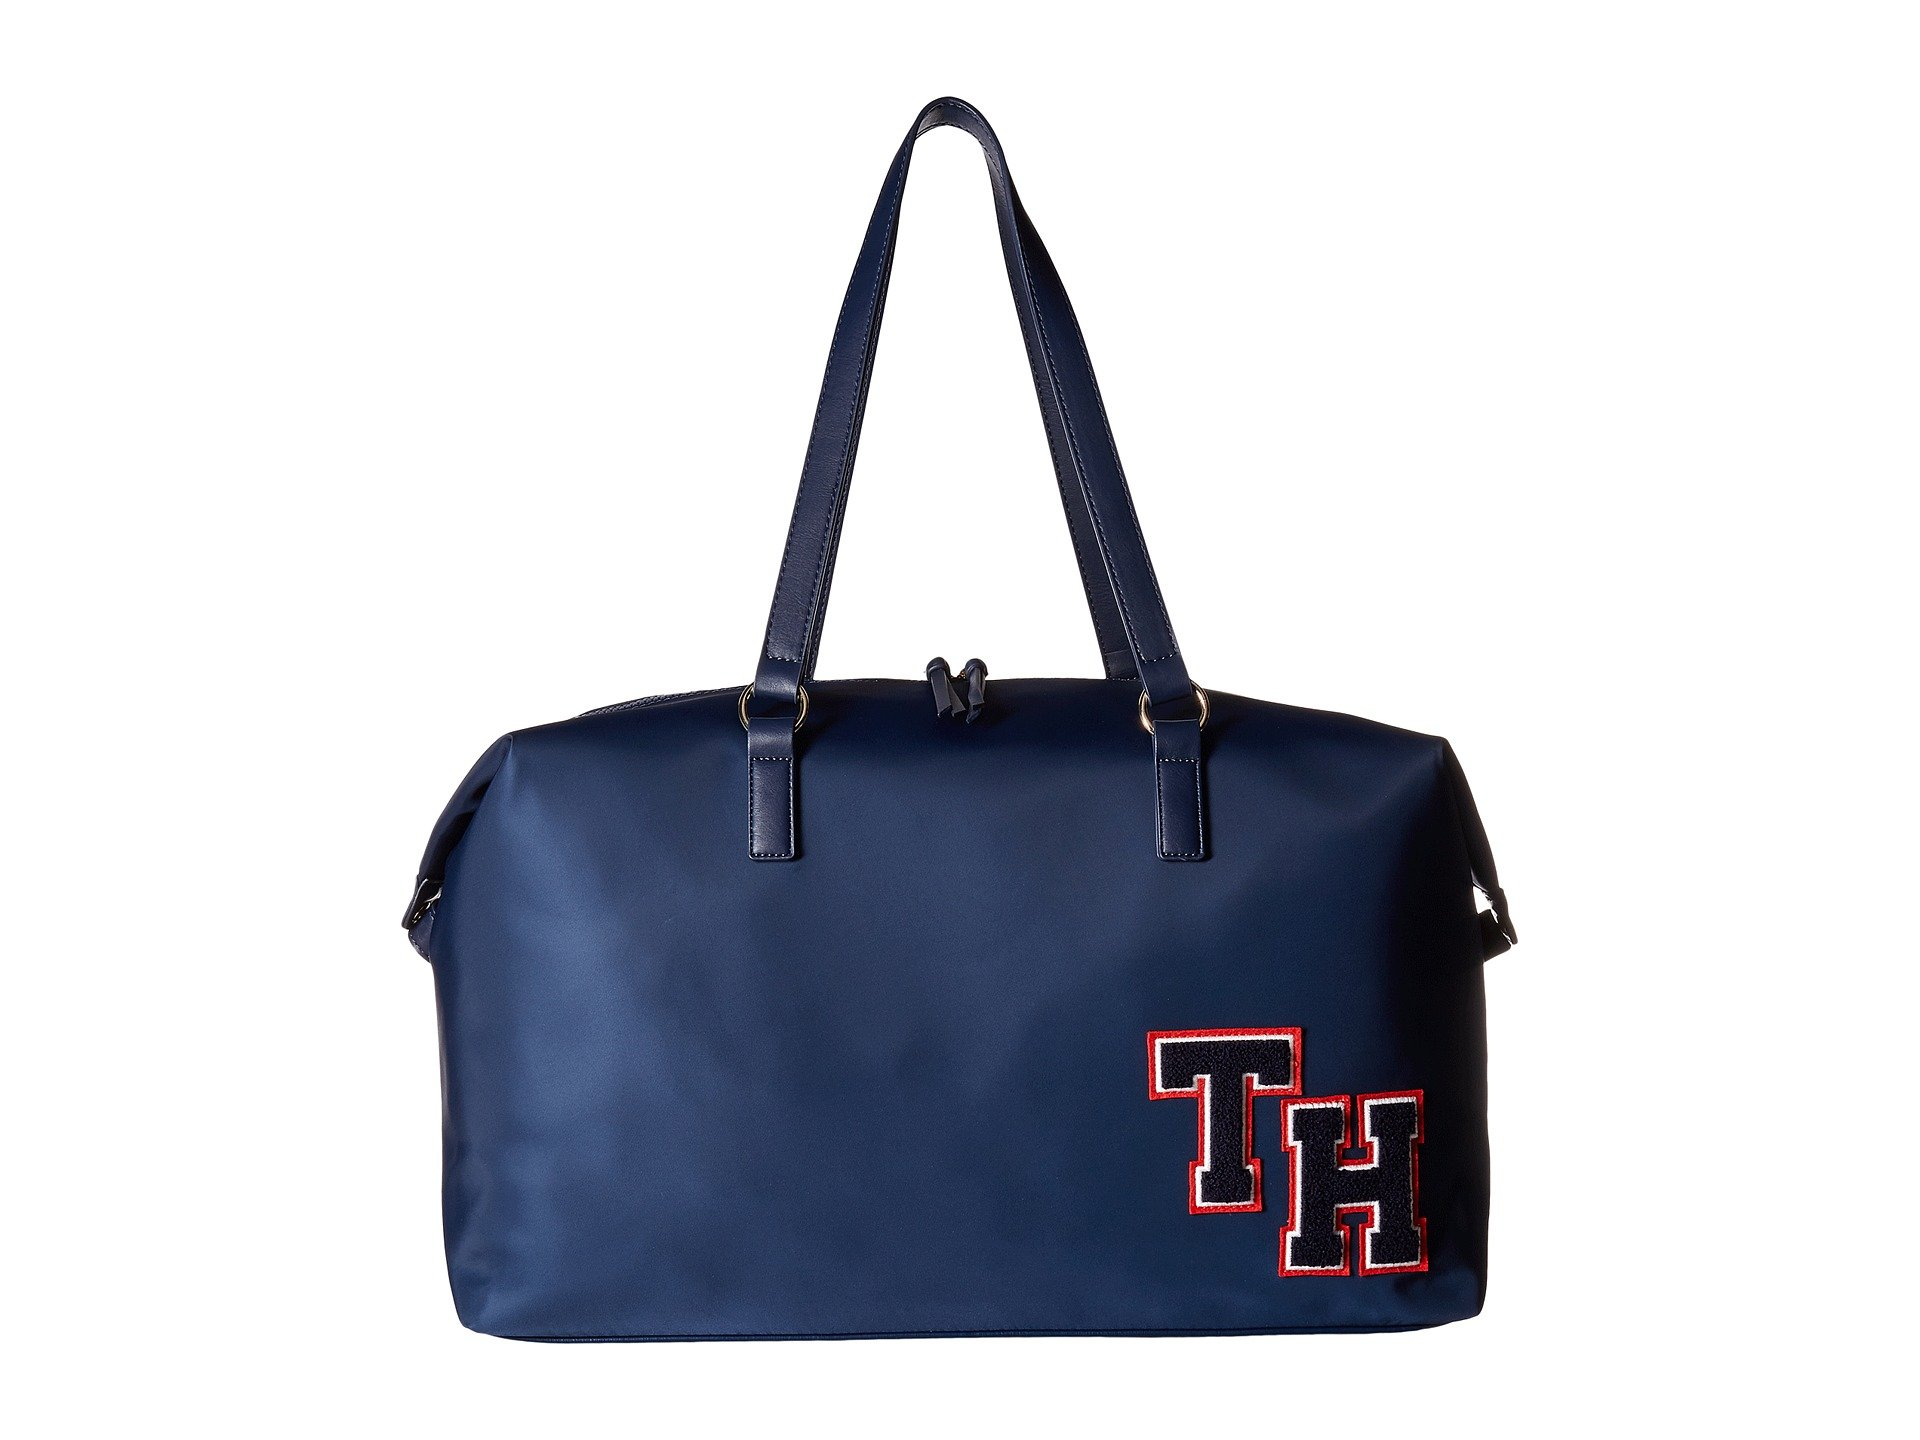 tommy hilfiger weekender item large weekender nylon at 6pm. Black Bedroom Furniture Sets. Home Design Ideas